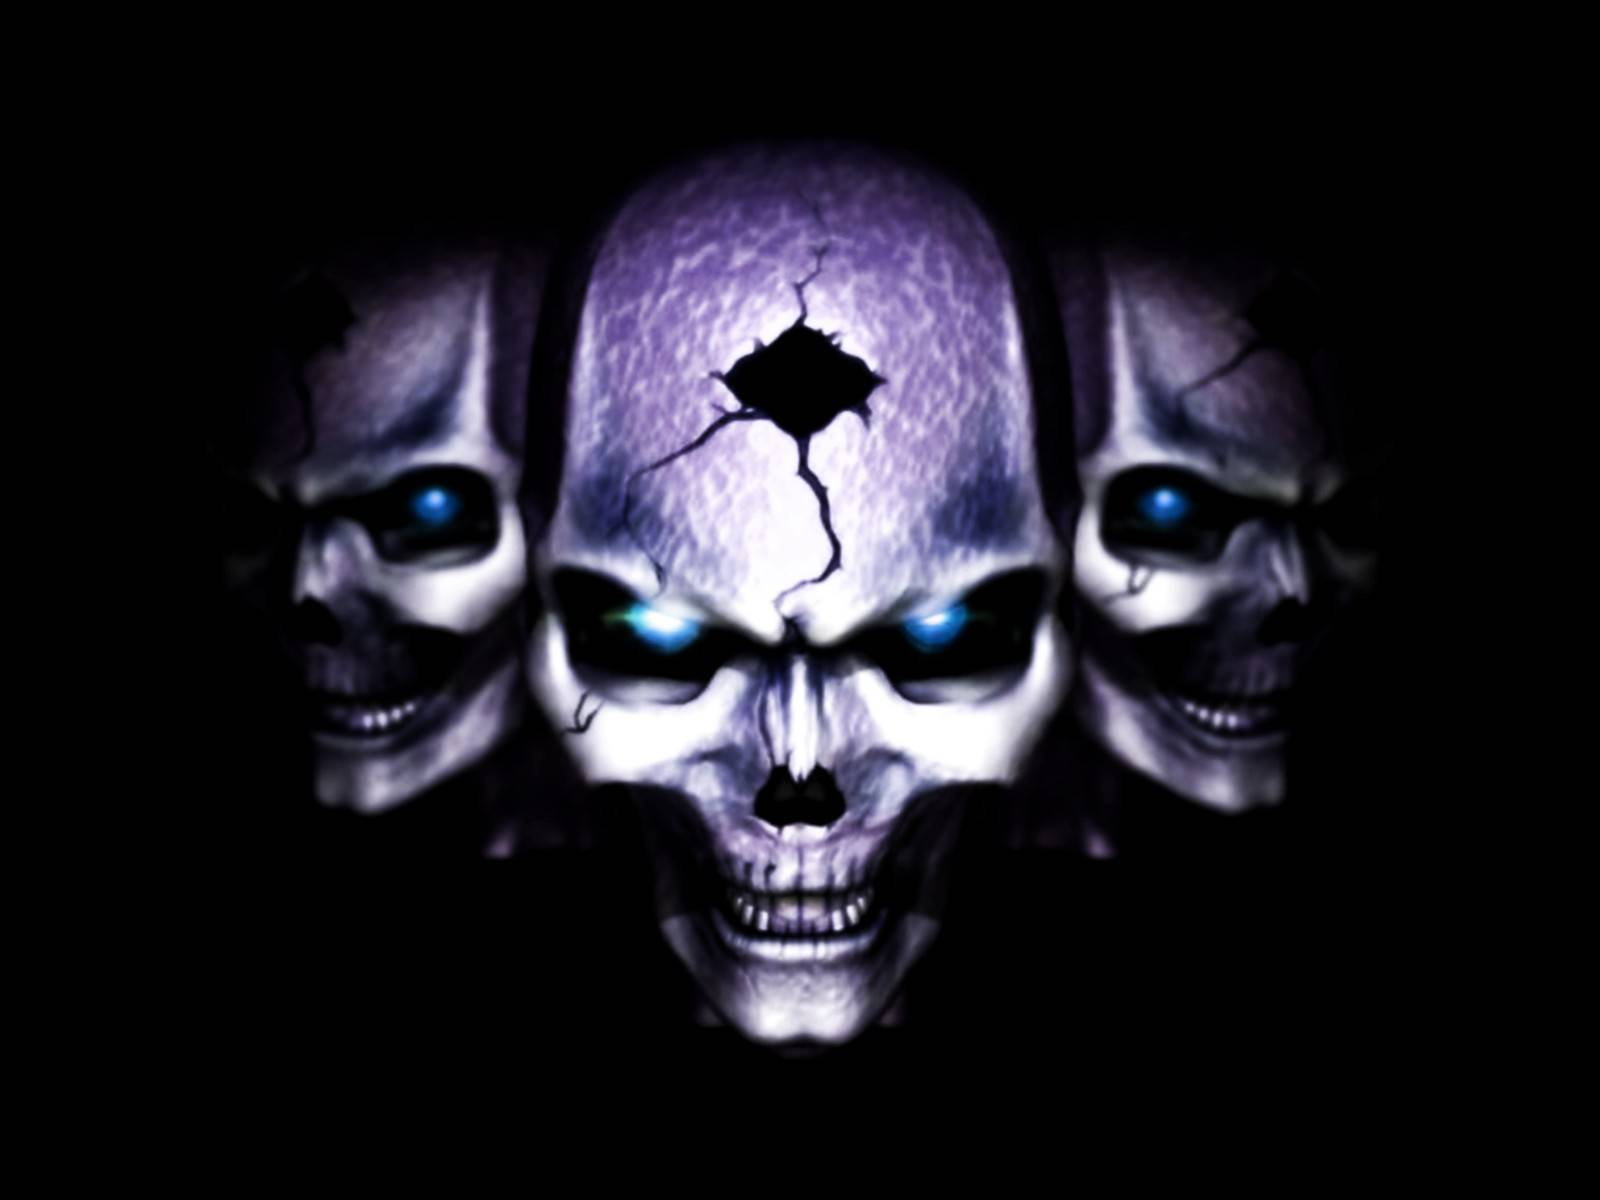 Skull wallpaper hd 1600x1200